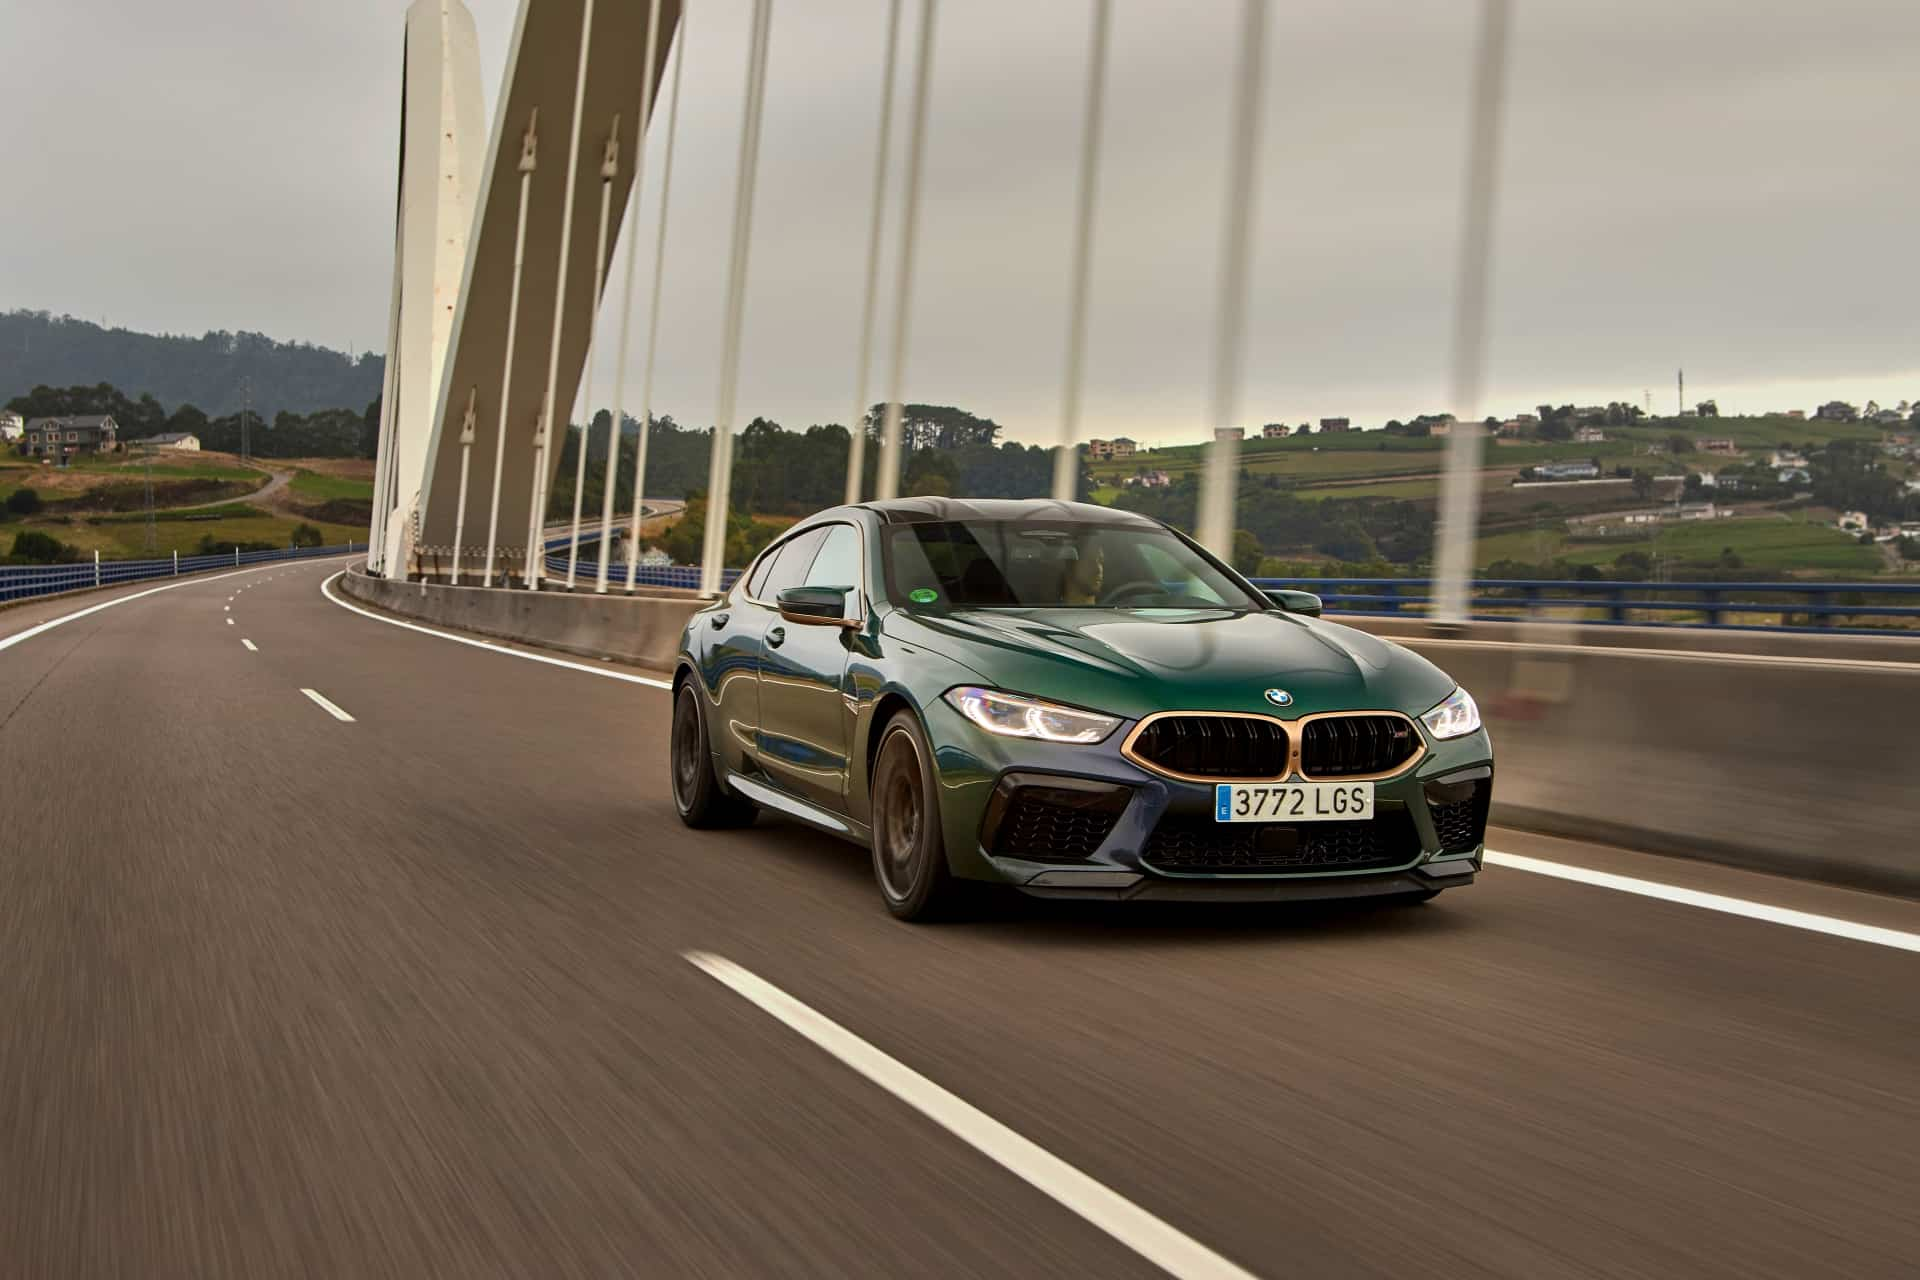 The BMW M8 Gran Coupe First Edition F93 5